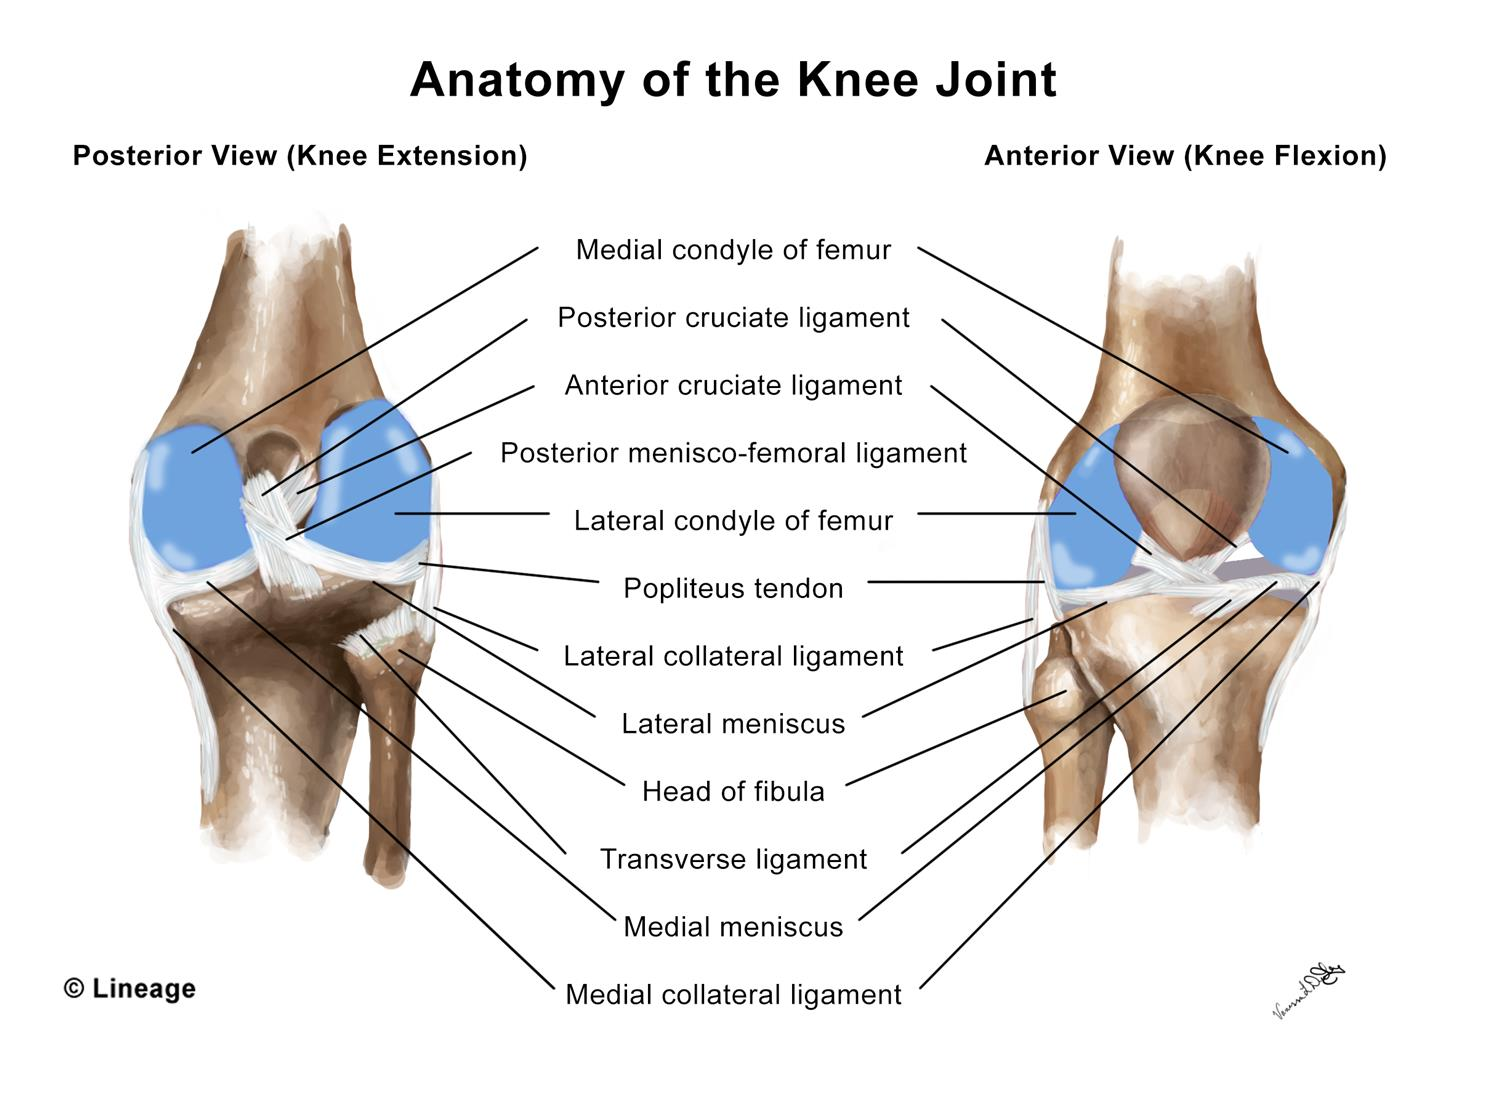 the causes and treatment of anterior cruciate ligament acl injuries Introduction management of patients with injuries to the anterior cruciate ligament (acl) of the knee has become one of the most studied topics in musculoskeletal medicine and rehabilitation.